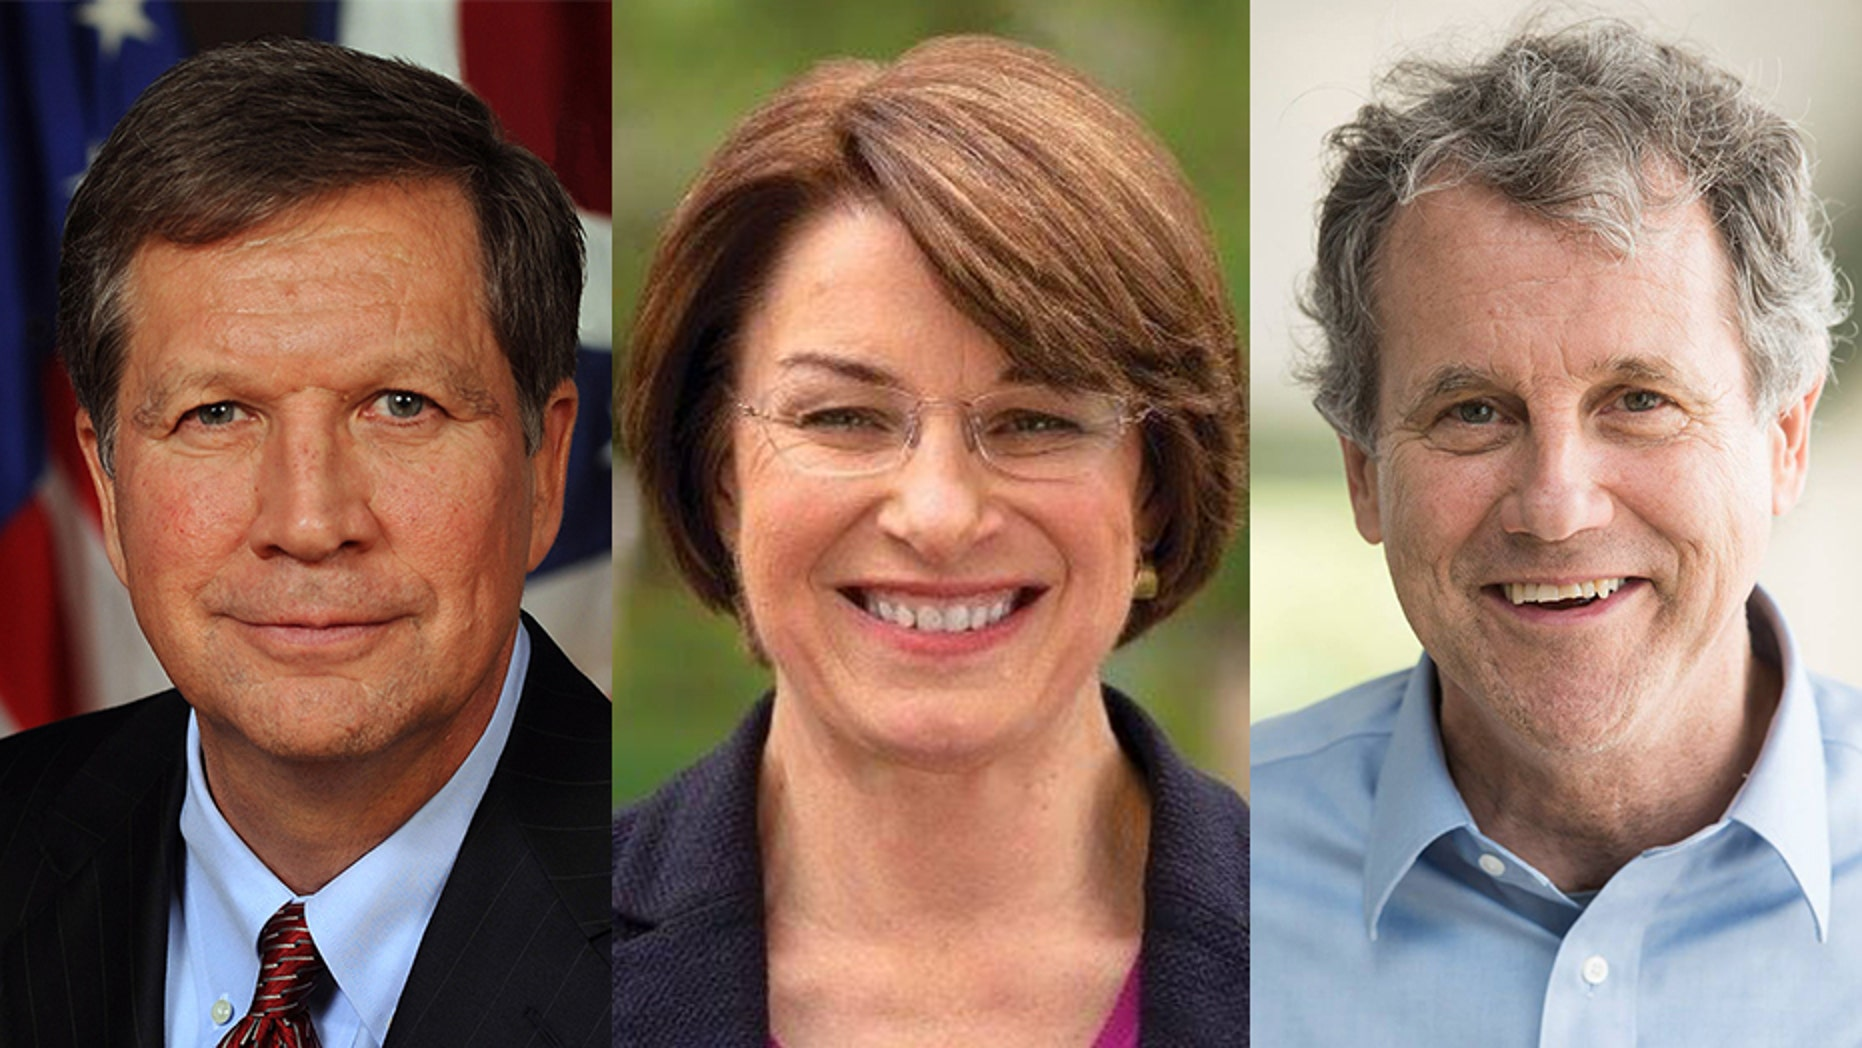 Ohio Gov. John Kasich, Minnesota Sen. Amy Klobuchar and Ohio Sen. Sherrod Brown.